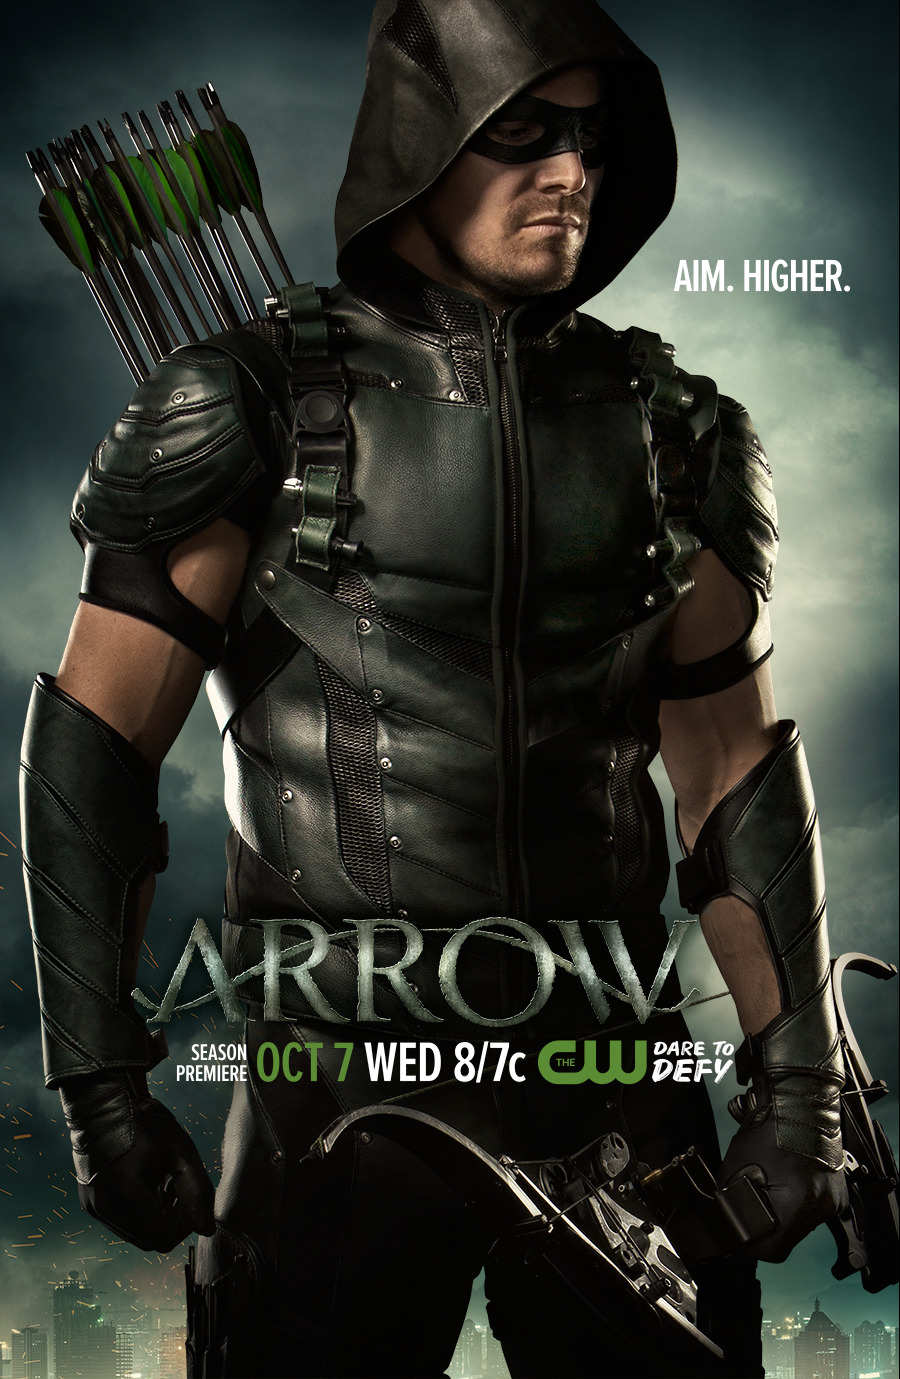 arrow season 4 episode 15 watch online free